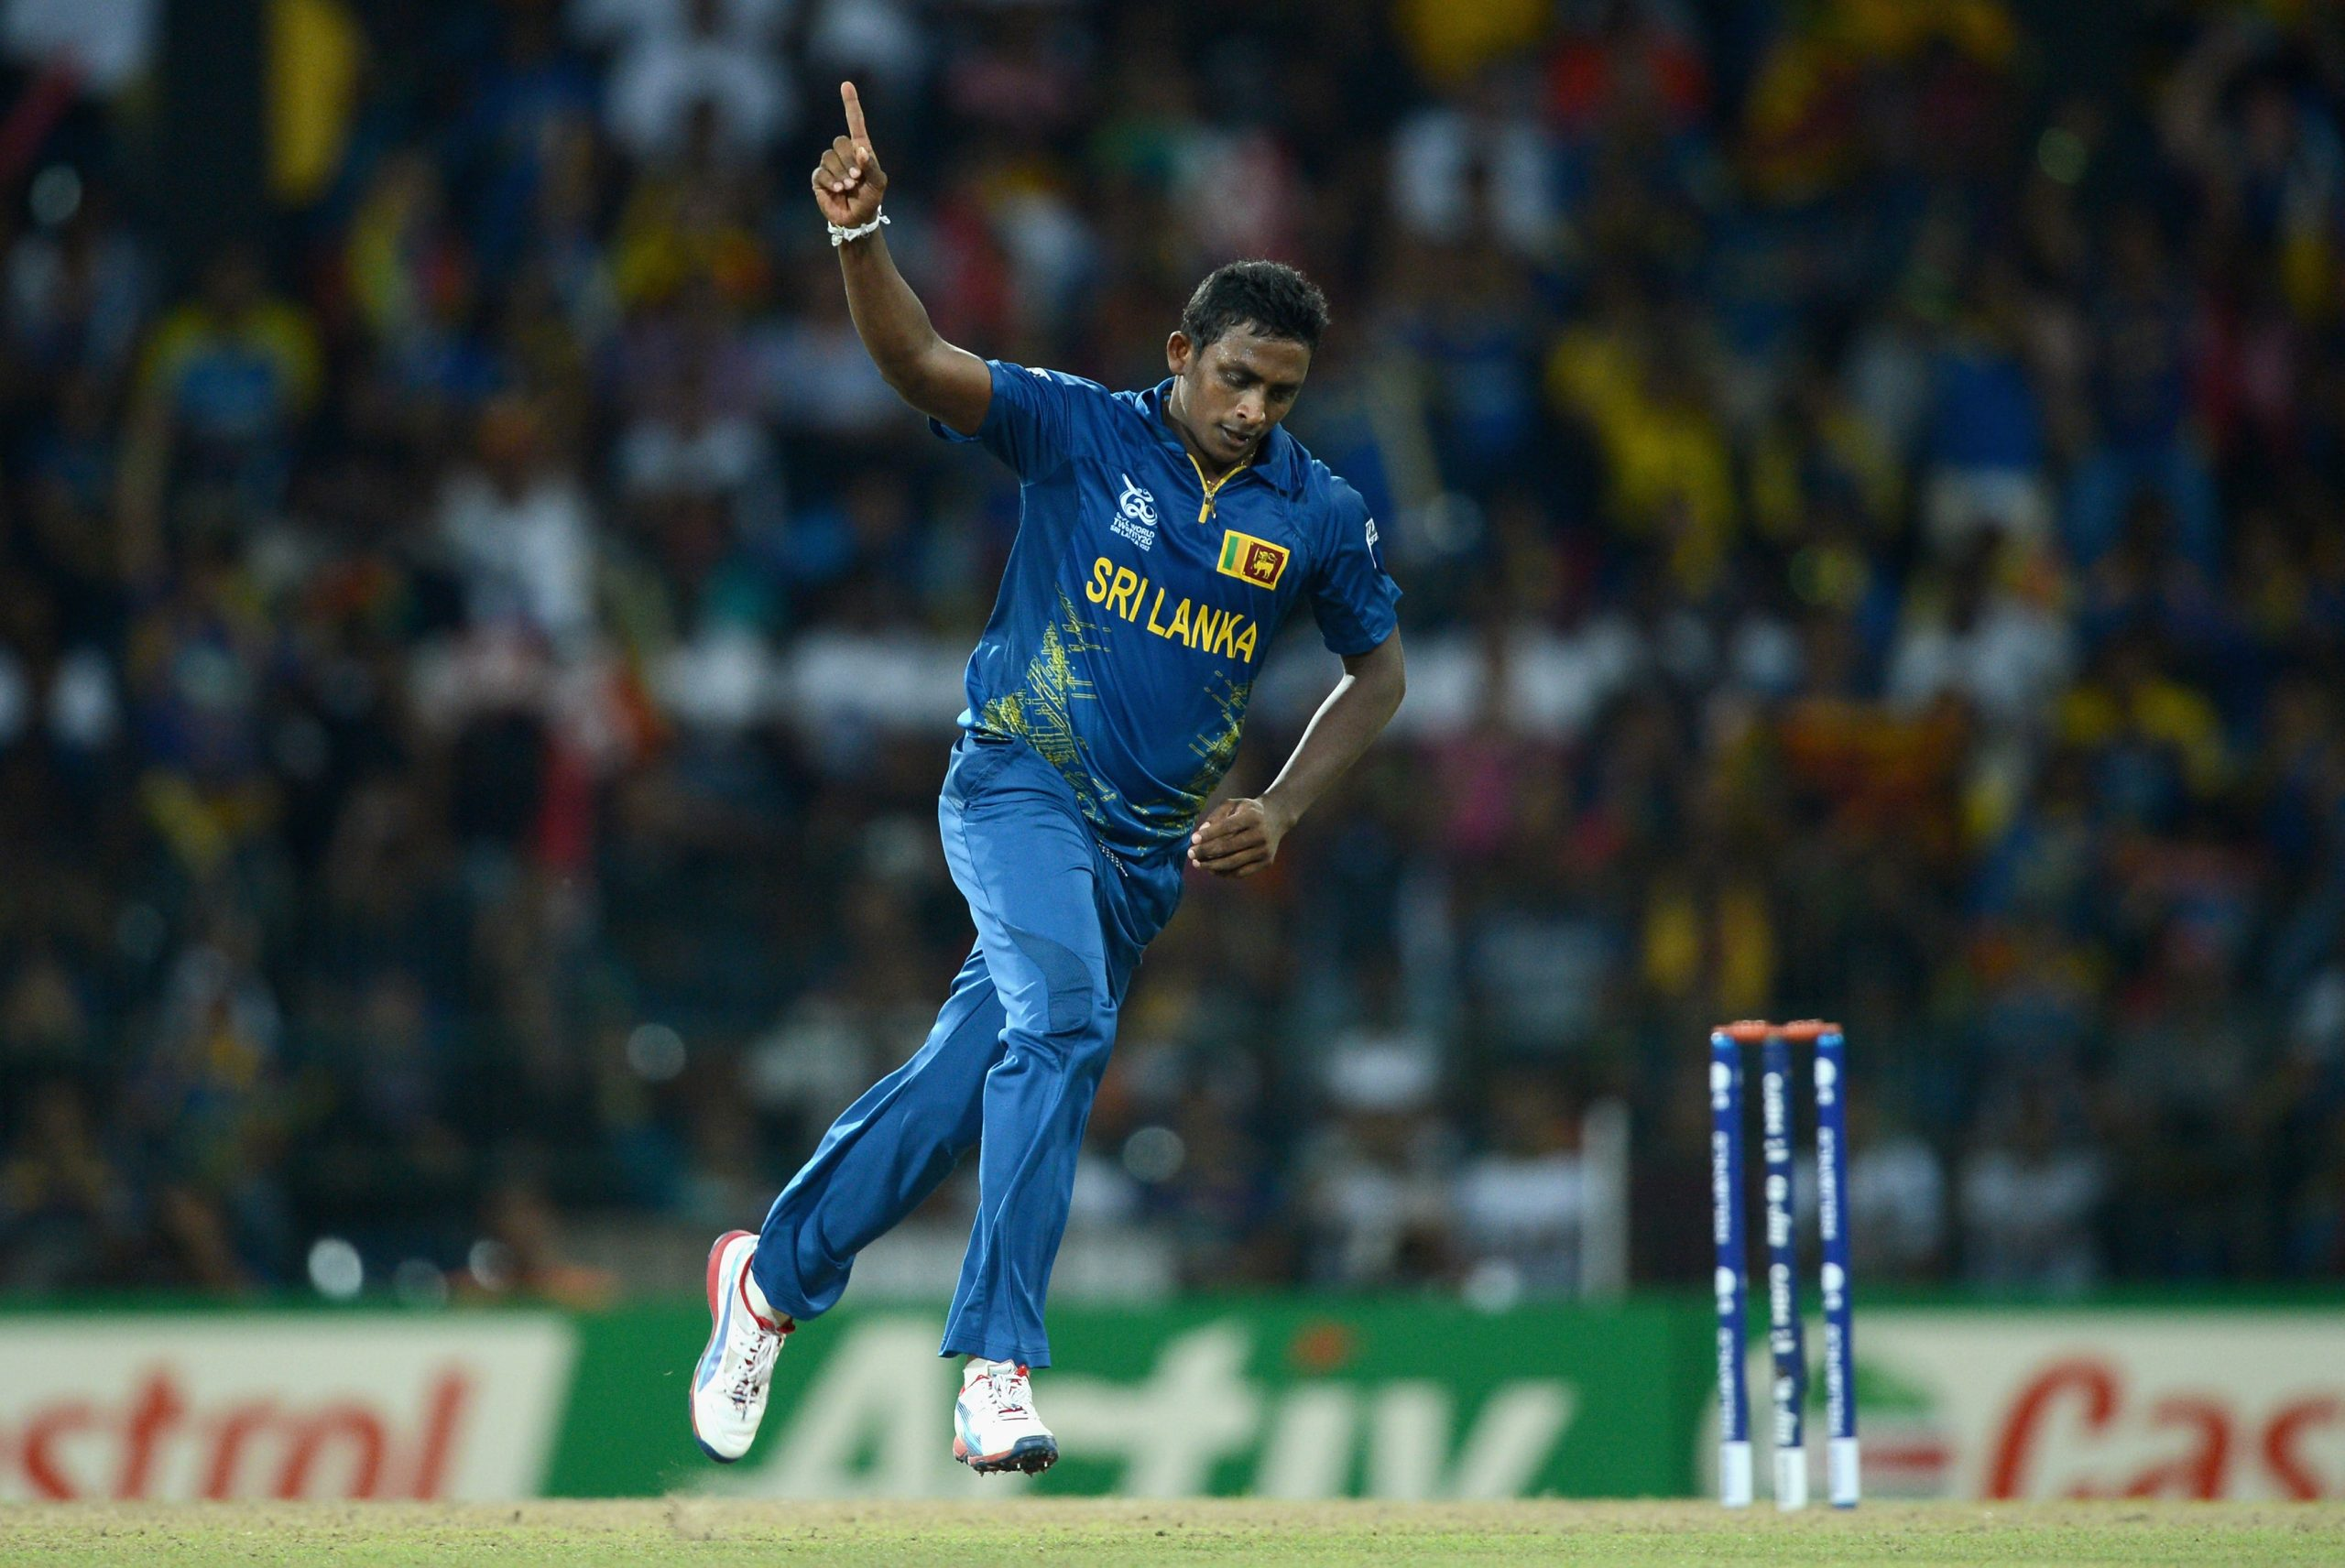 Ajantha Mendis  (Photo by Gareth Copley/Getty Images)